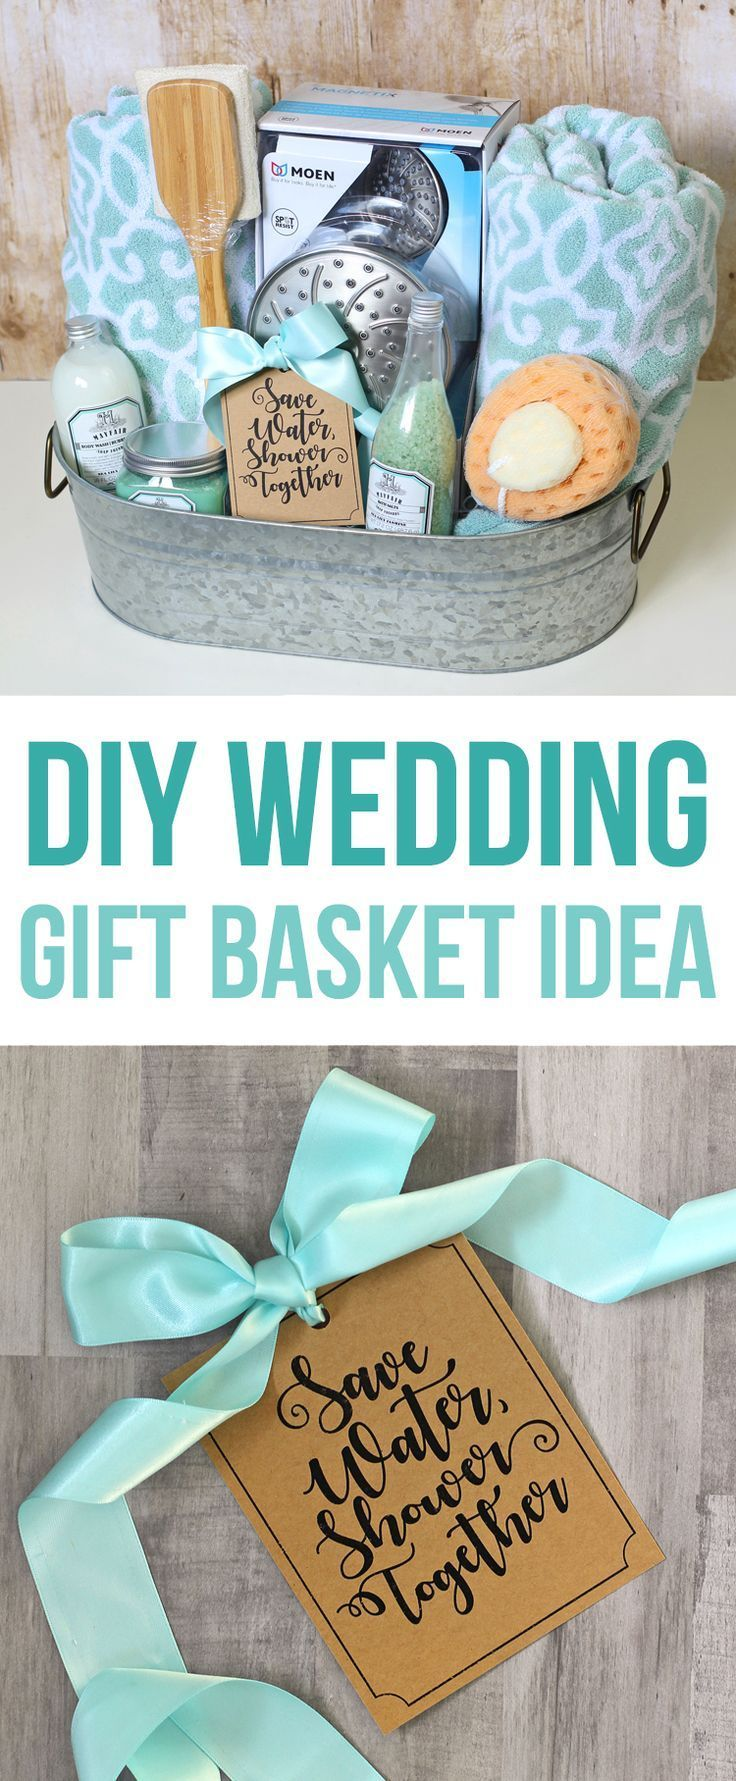 Shower Themed DIY Wedding Gift Basket Idea Wedding gift